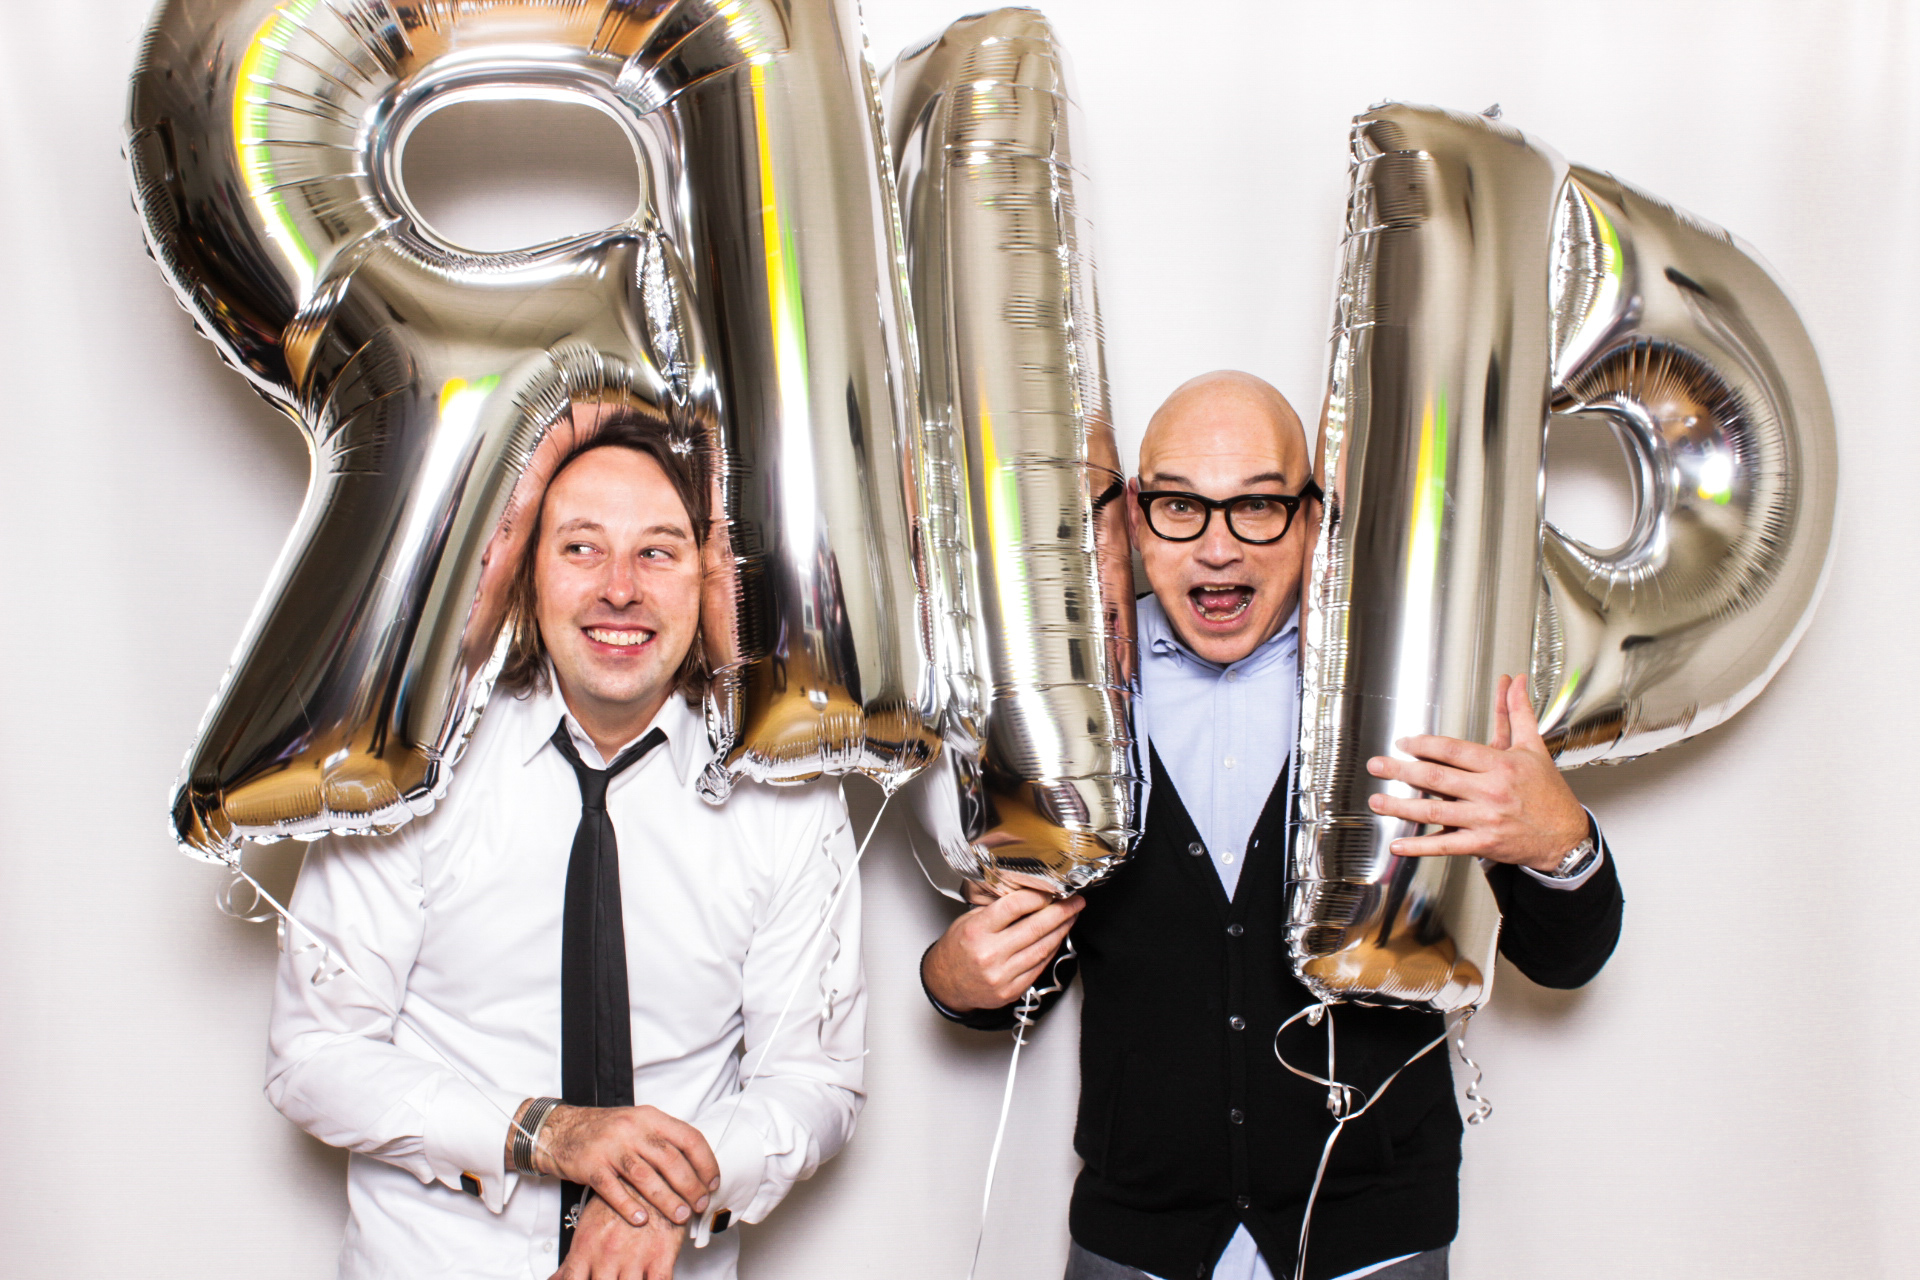 Two friends posing with big balloons in front of their Phizpix photo booth rental